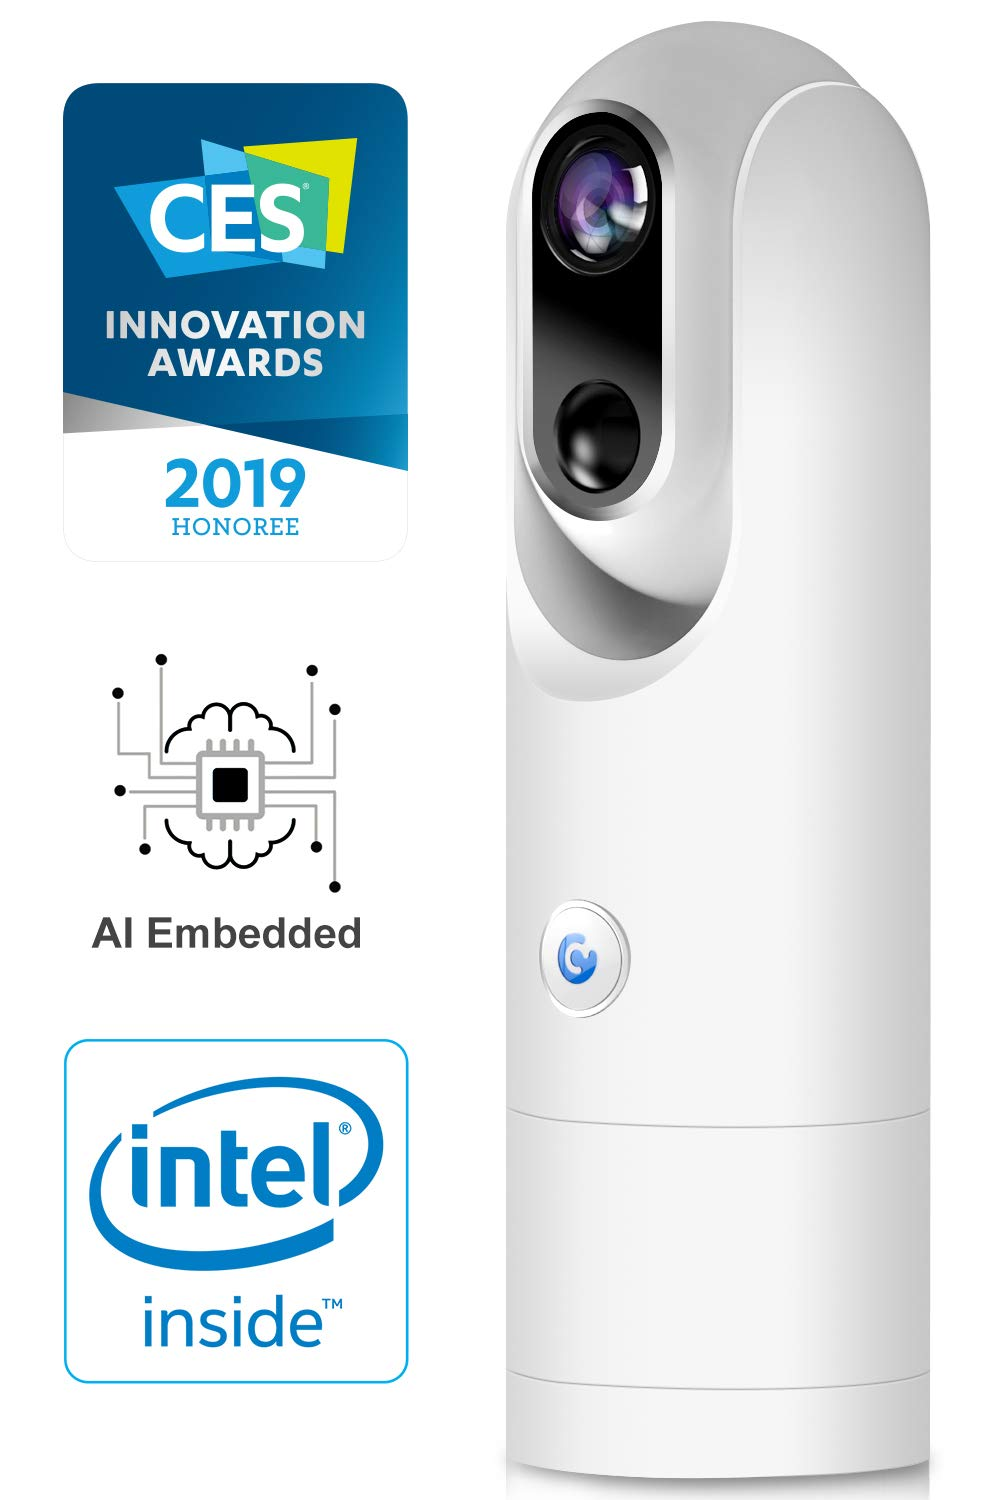 Wireless Home Security AI Camera - 1080P FHD Wi-Fi Battery-Powered Surveillance Camera System, Person Detection, Face Recognition, Low False Alarm, Night Vision, 2-Way Audio, Free 8GB Storage - White